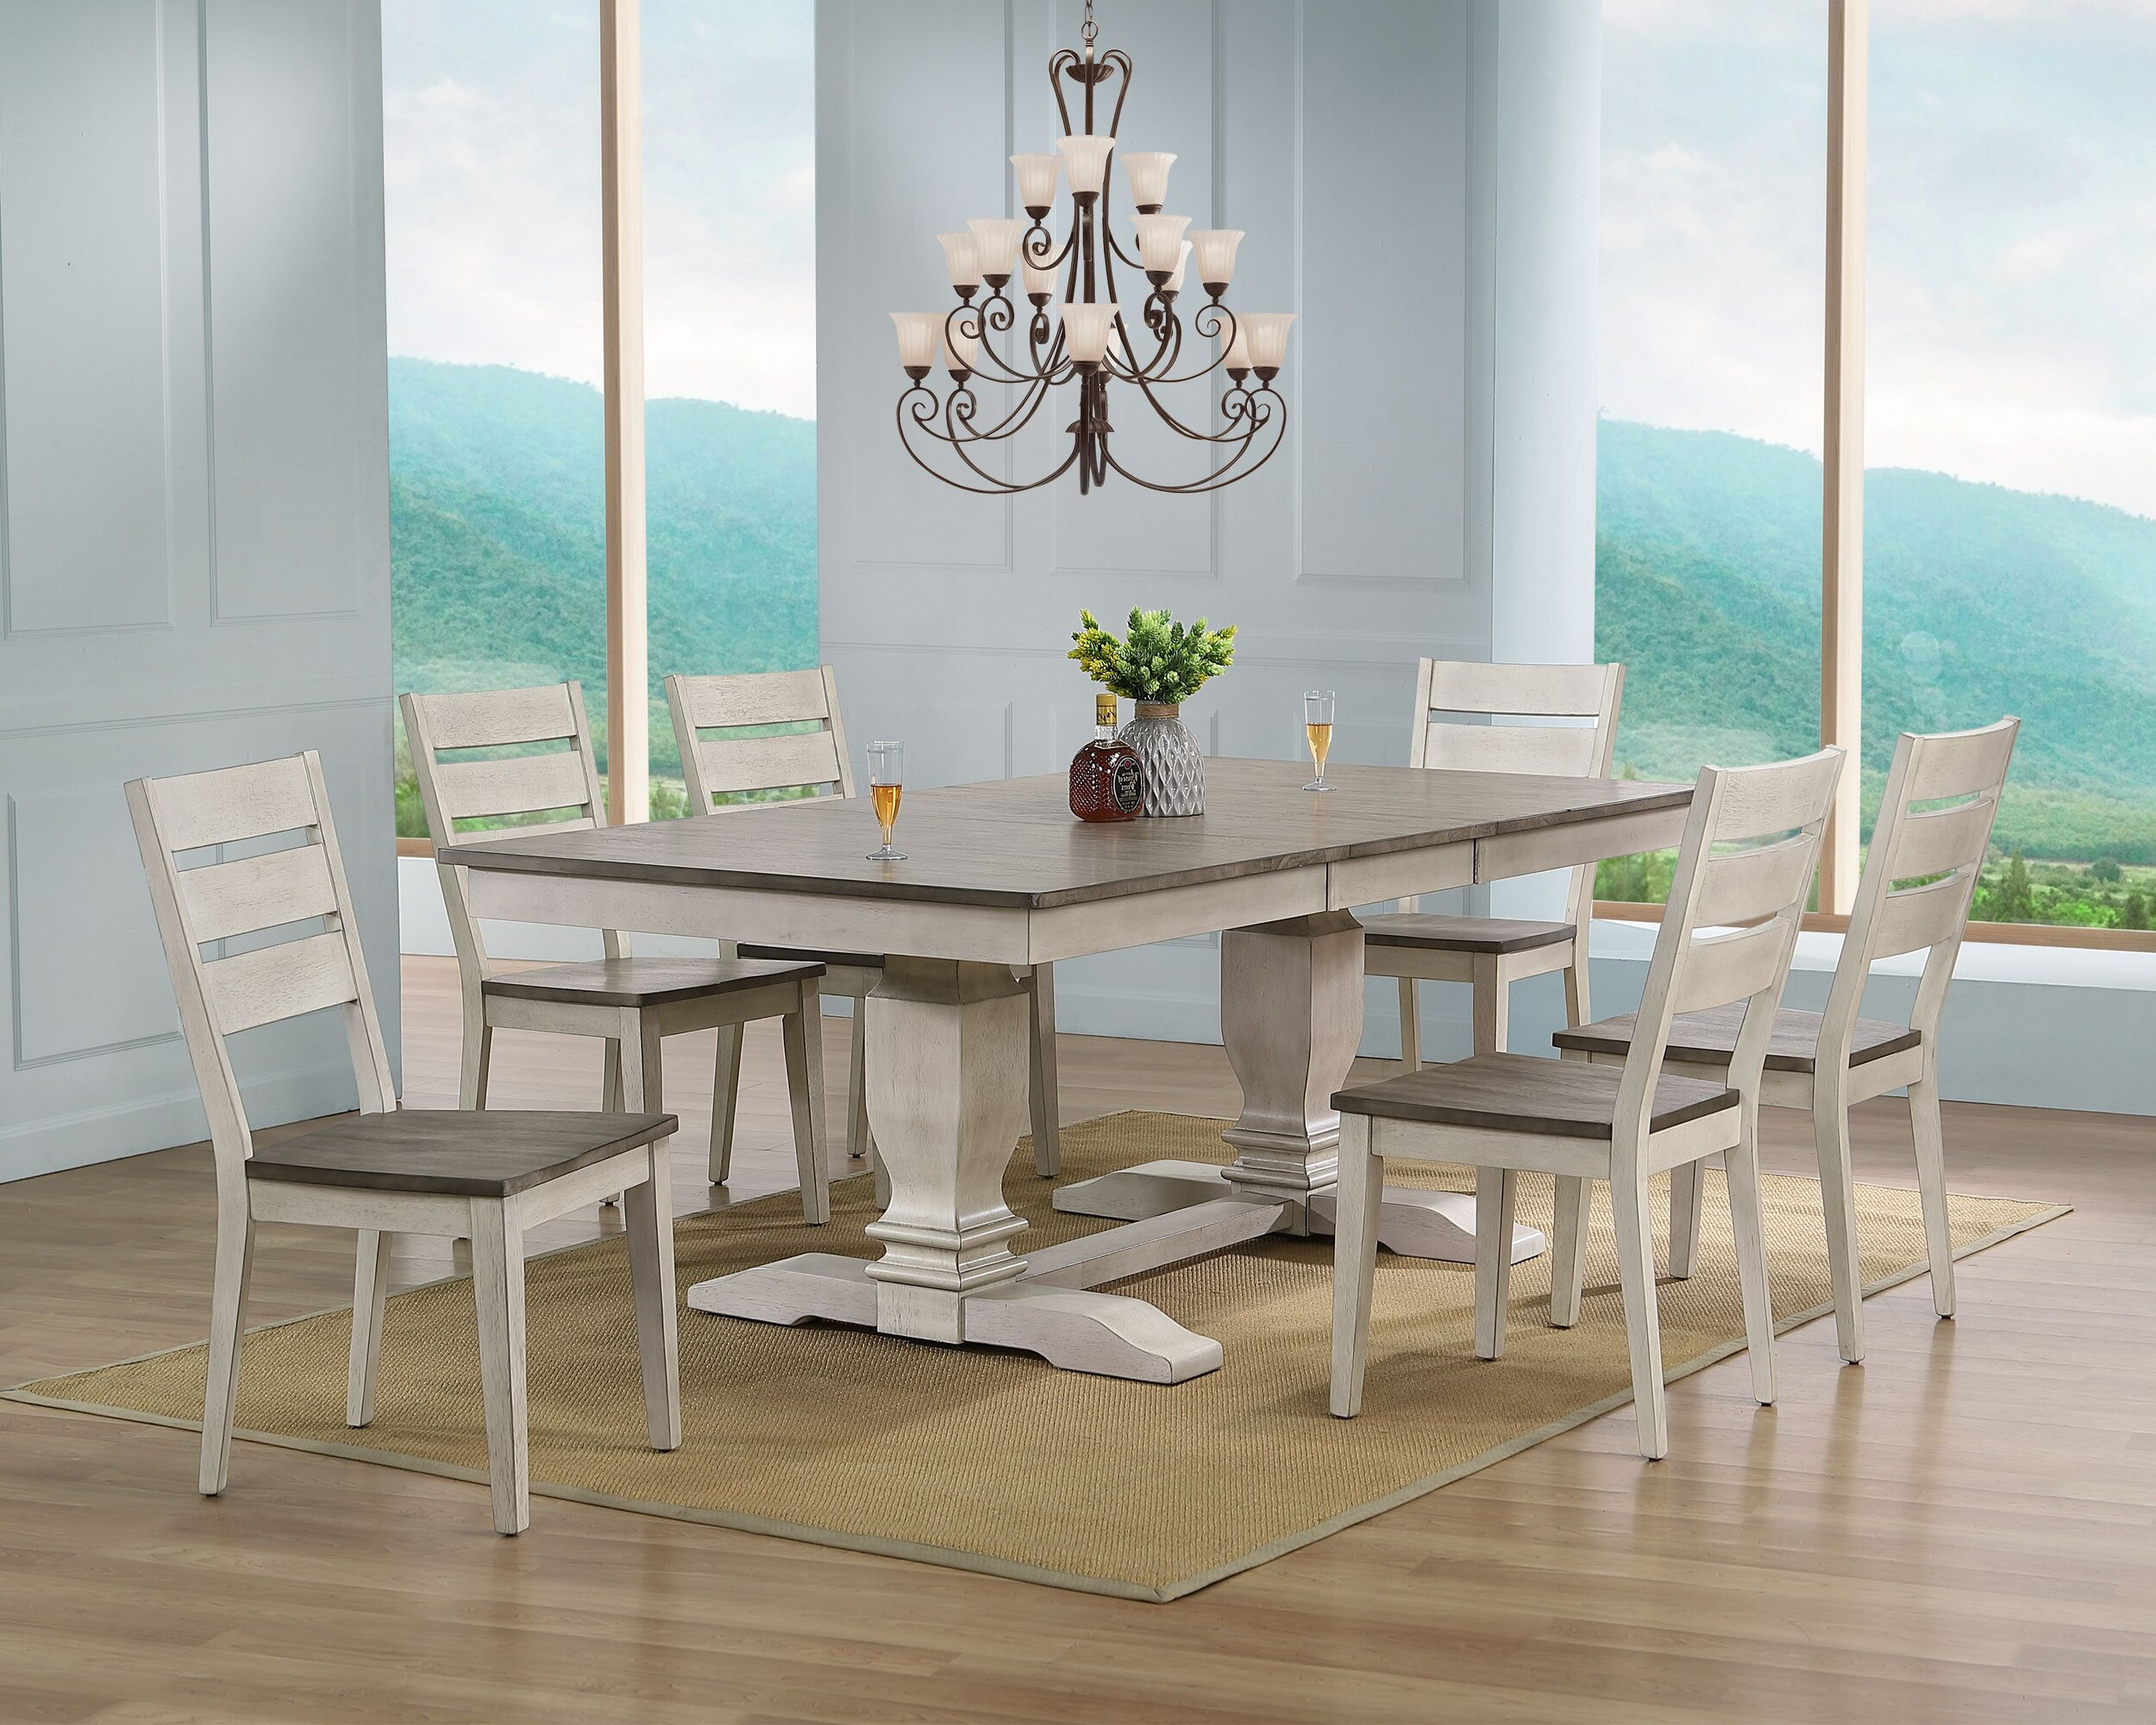 """42""""X64""""X82"""" DOUBLE PEDESTAL TRANSITIONAL LADDER BACK SIDE CHAIR ASH/ STORMY WHITE 7- PIECE SET"""